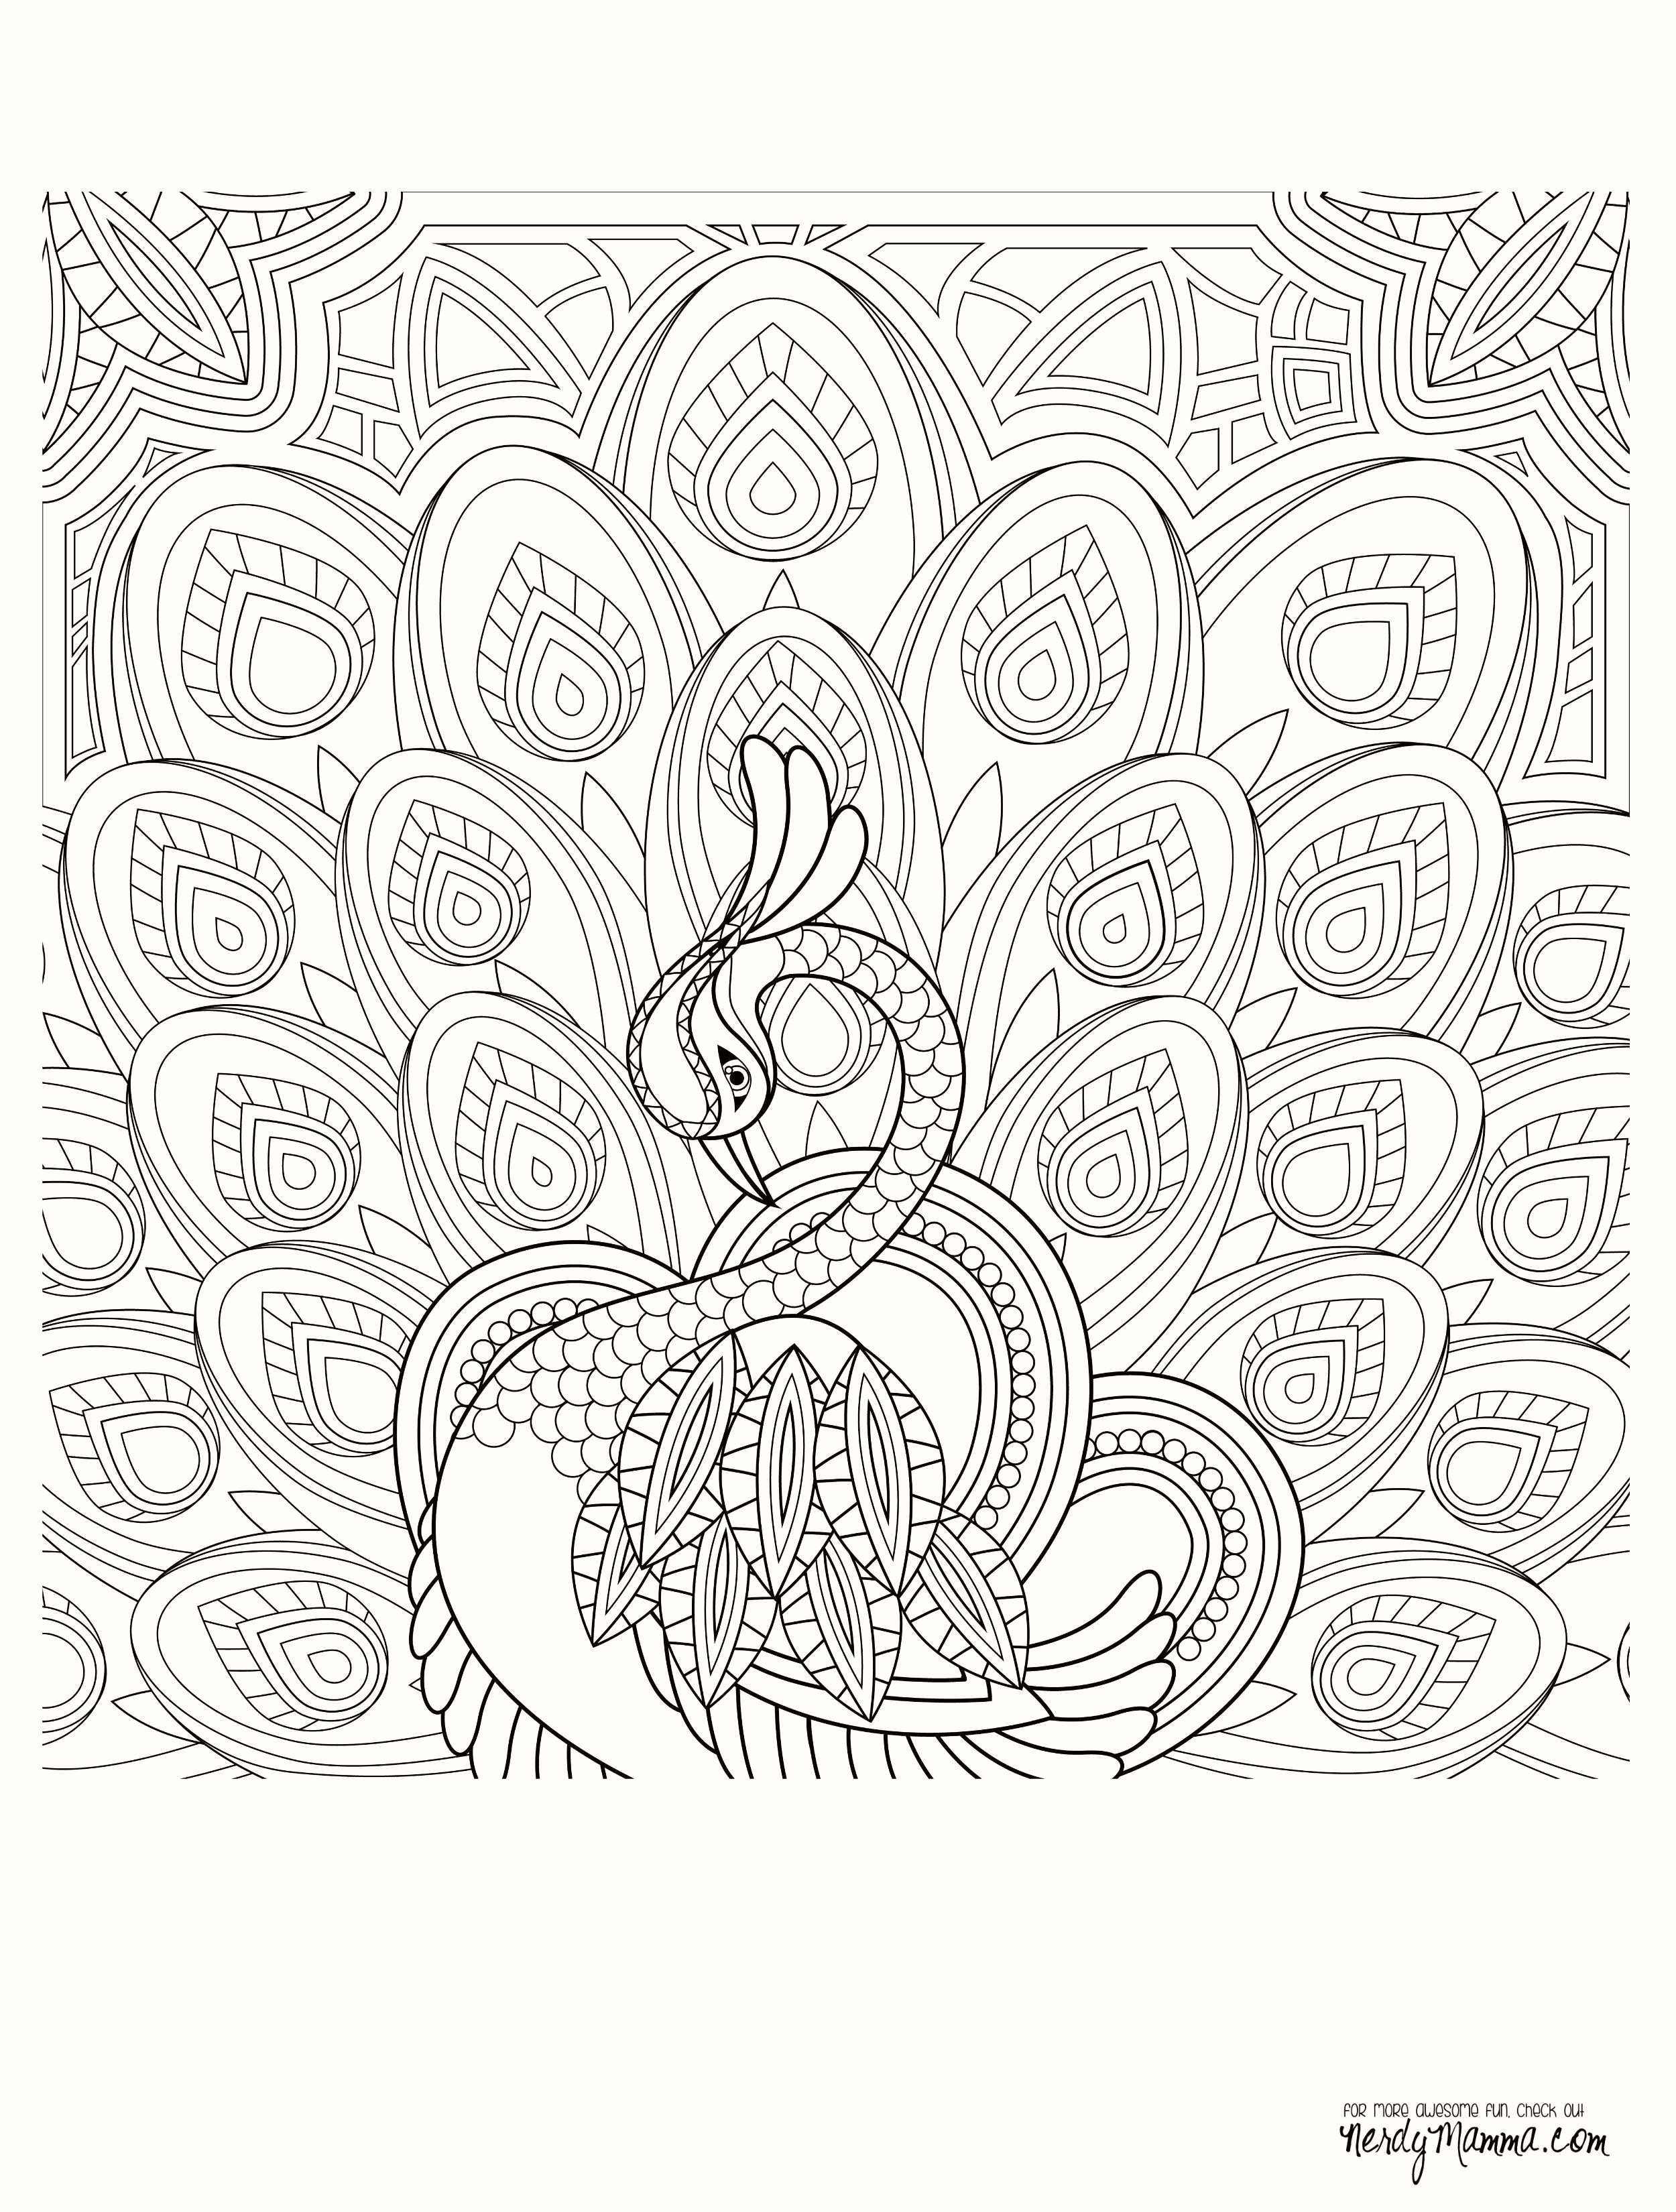 March Calendar Doodles Más Recientes Free Printable Summer Coloring Pages for Adults Awesome Free Of March Calendar Doodles Más Caliente Free Printable 2017 Calendar Printables Pinterest